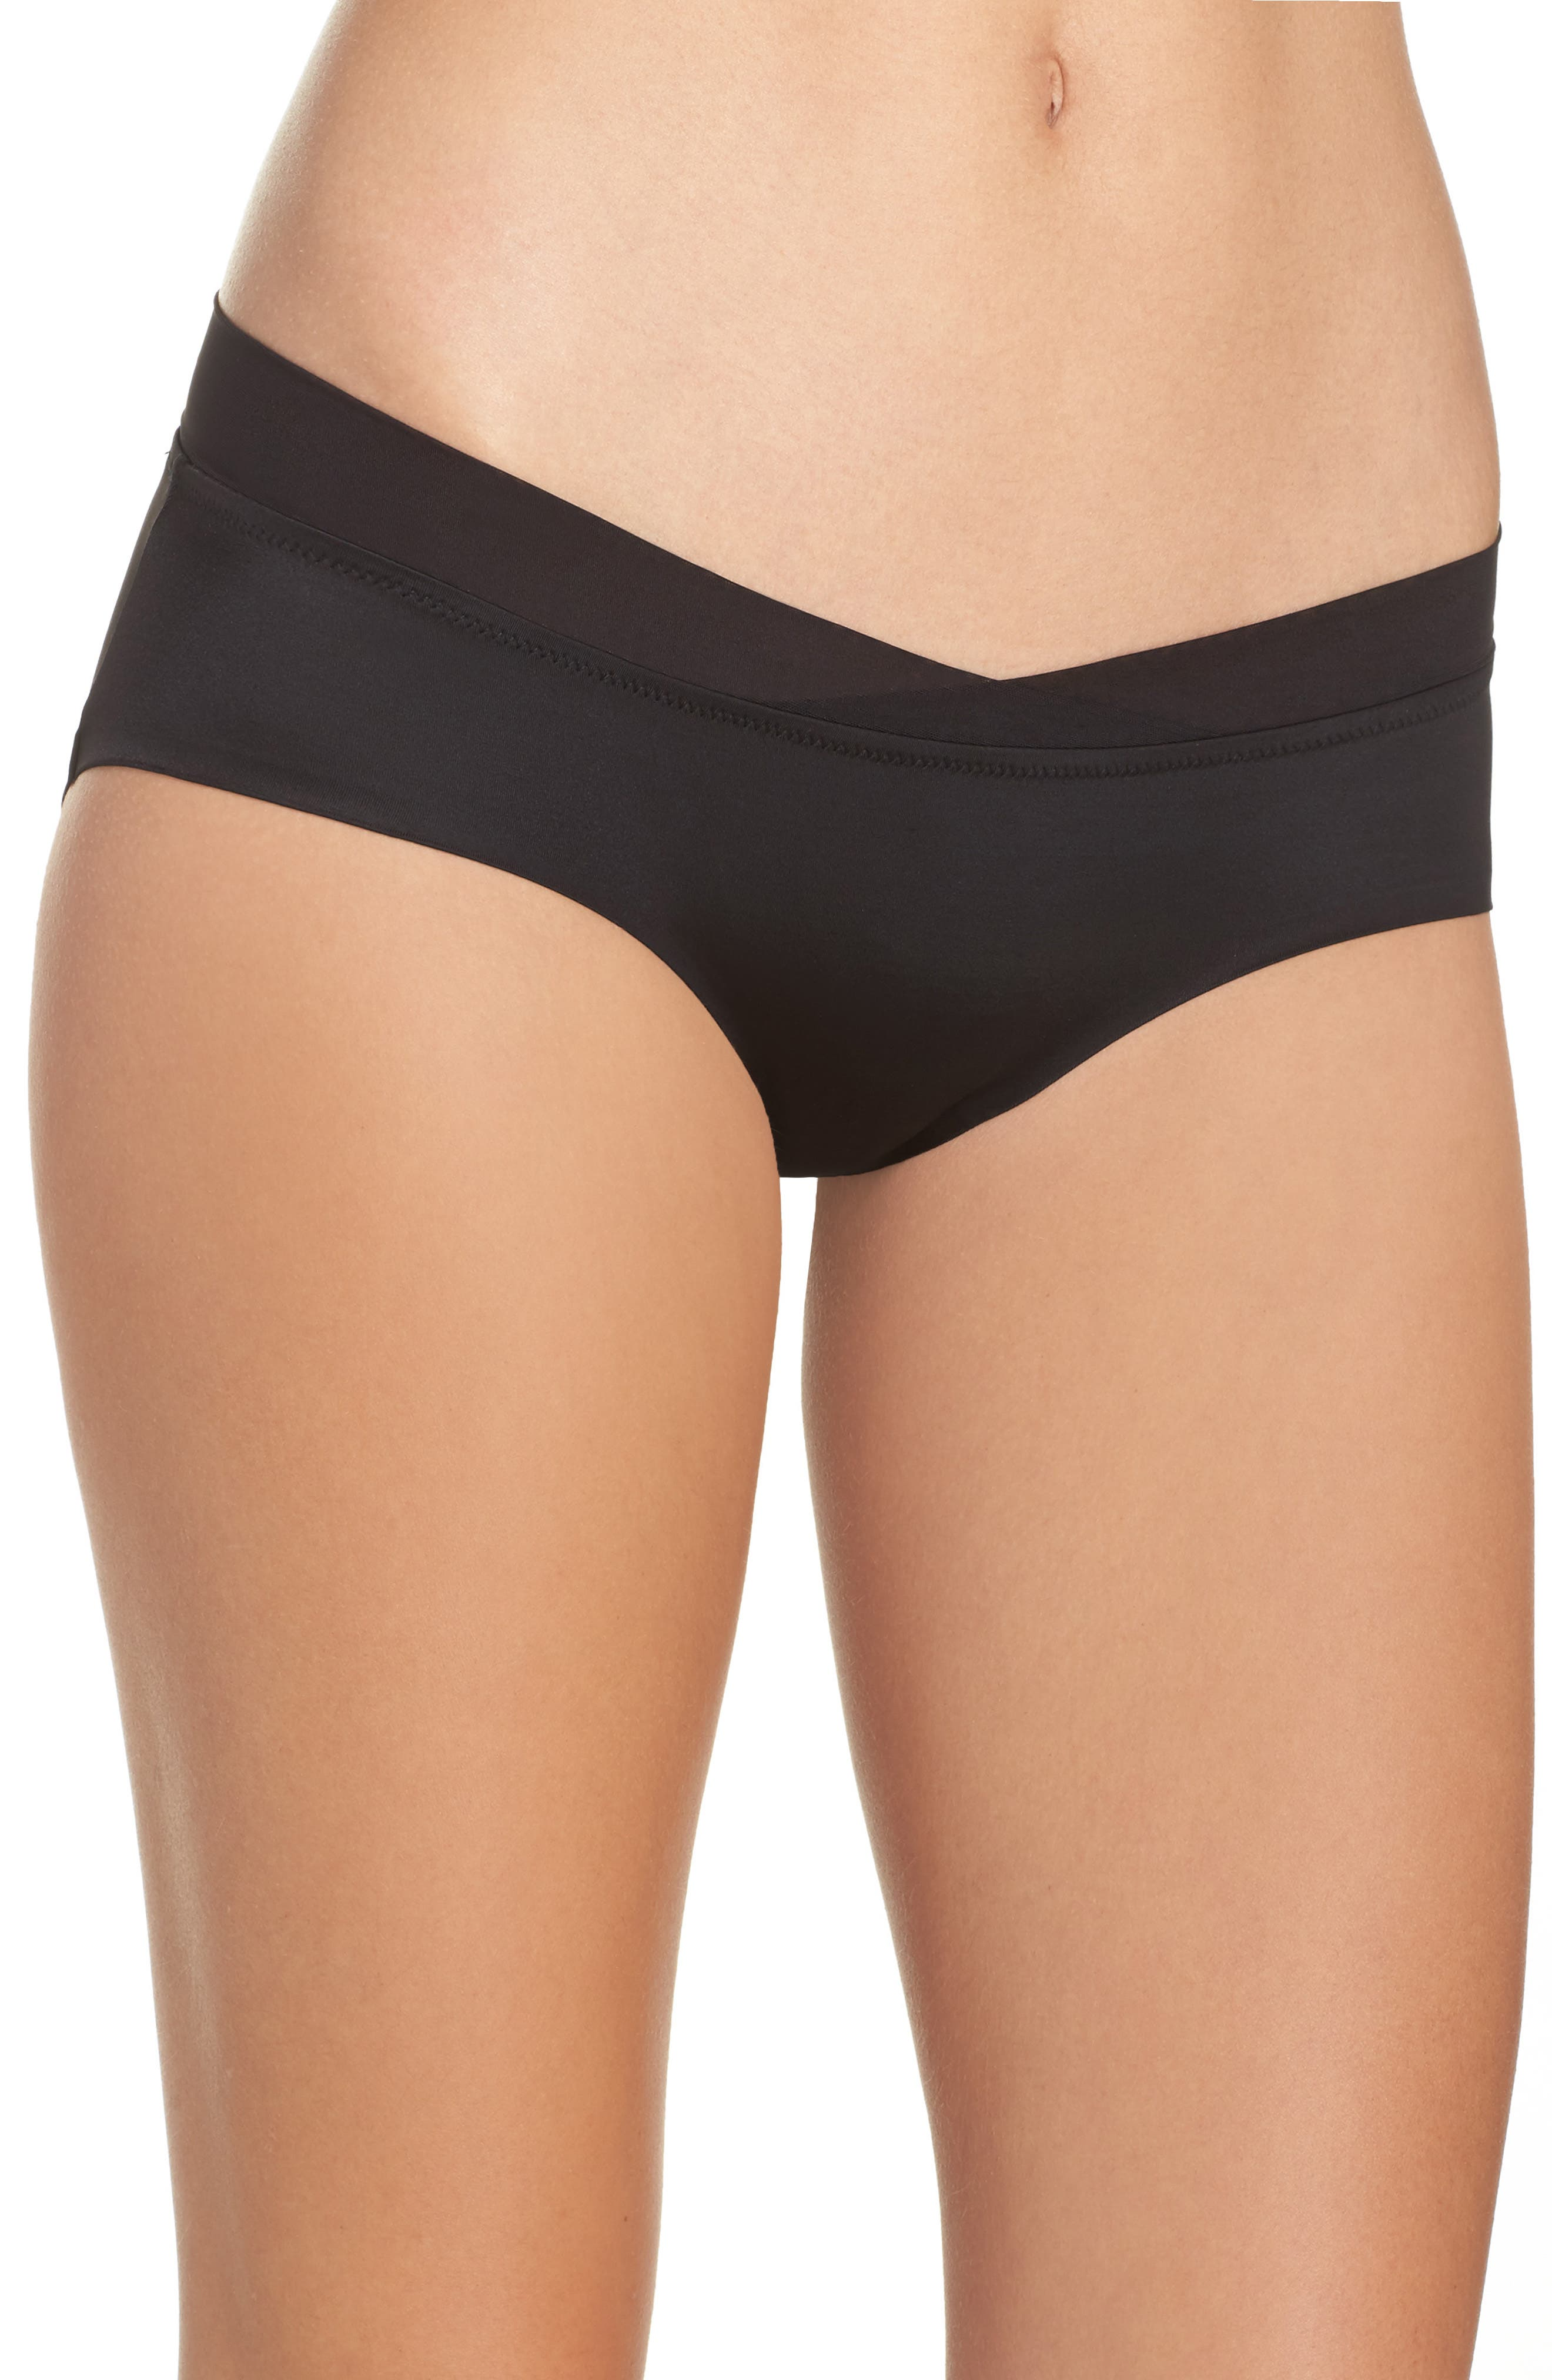 Crossfront Hipster Briefs,                             Main thumbnail 1, color,